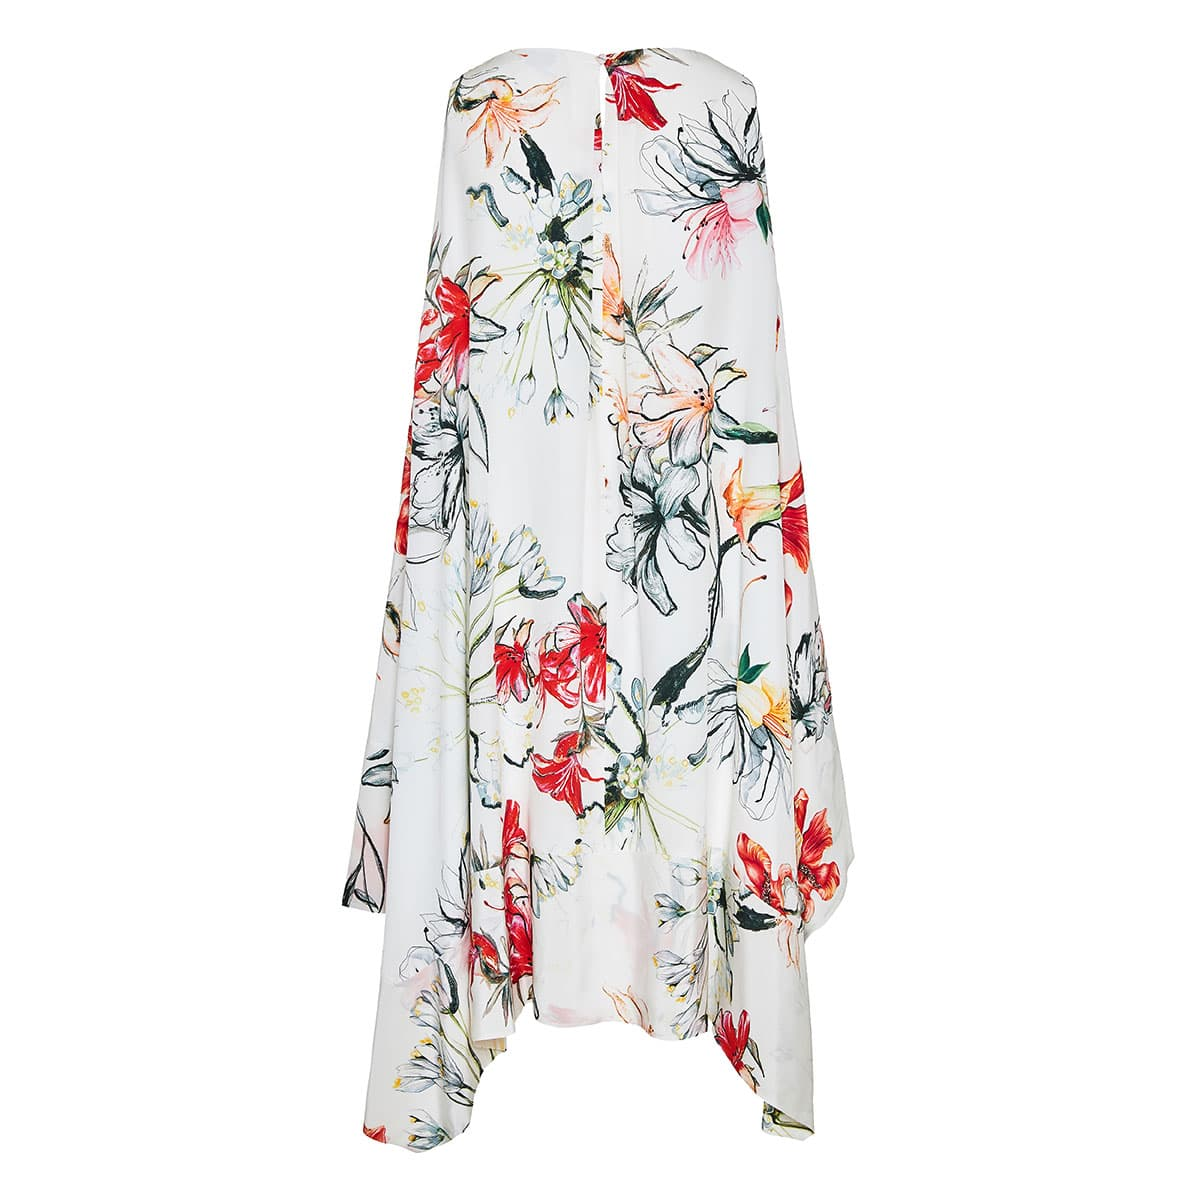 Asymmetric floral silk dress